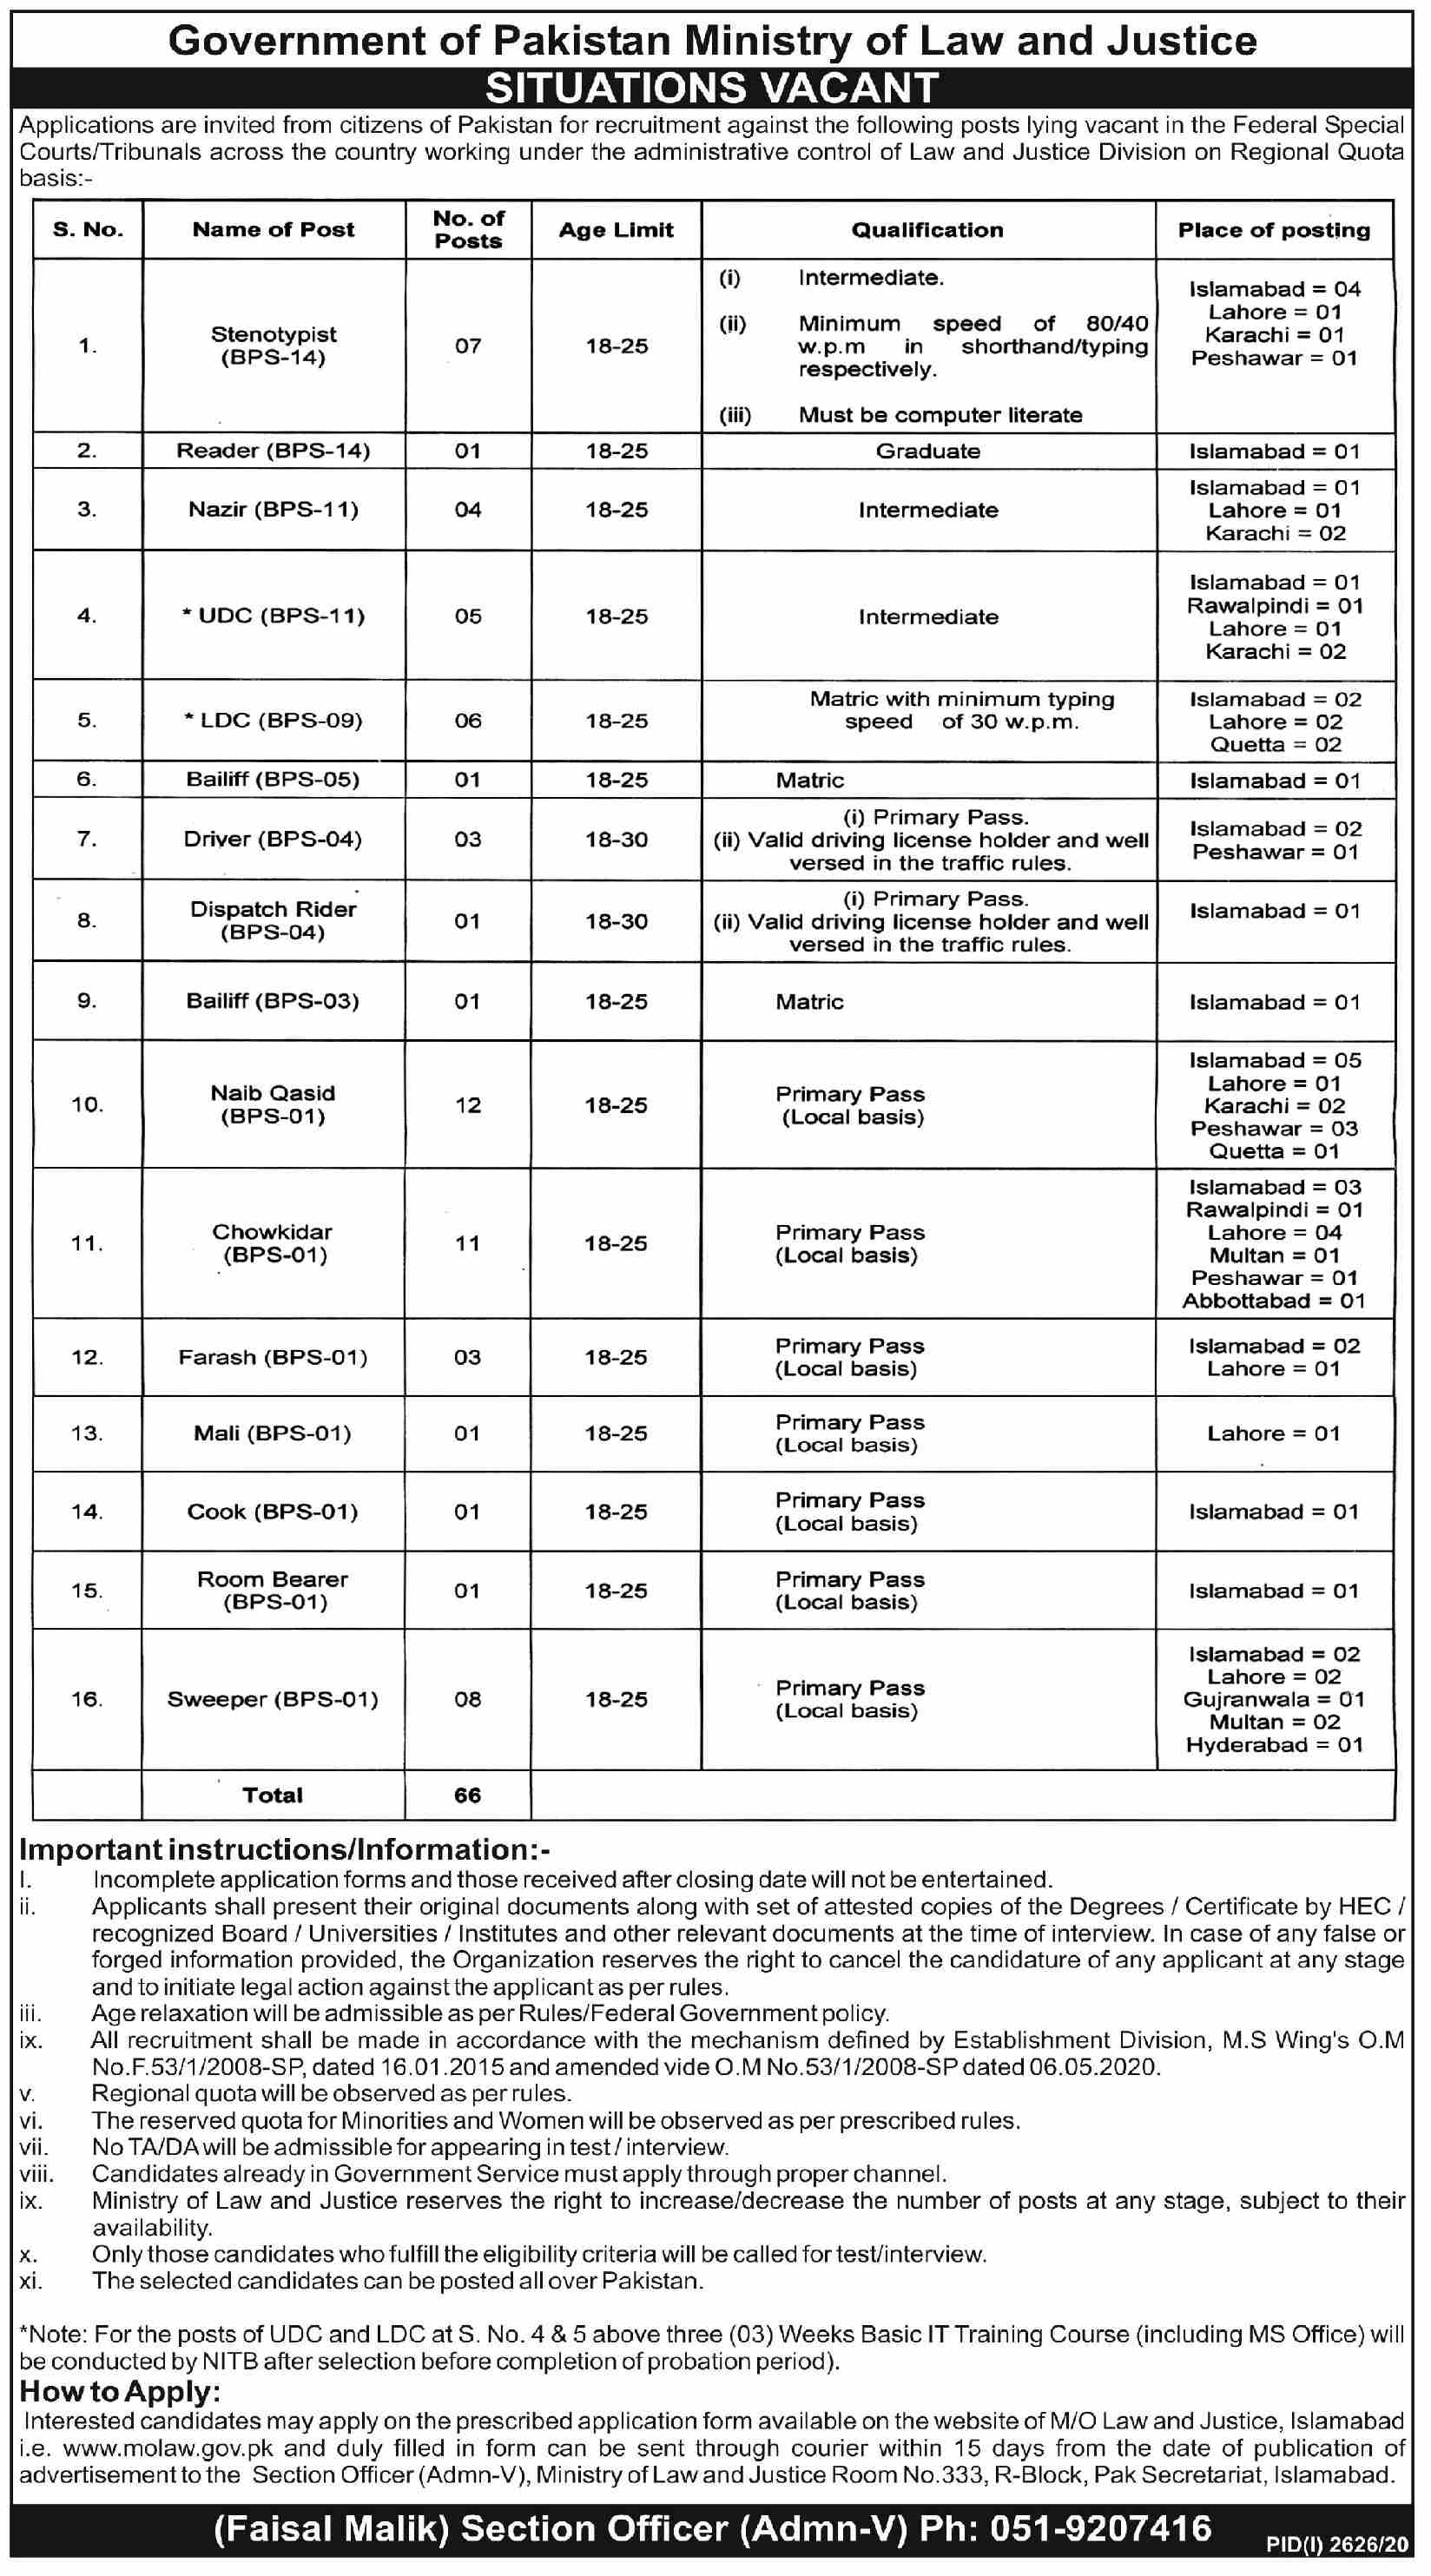 Ministry Of Law & Justice jobs newspaper ad for Sweeper in Islamabad